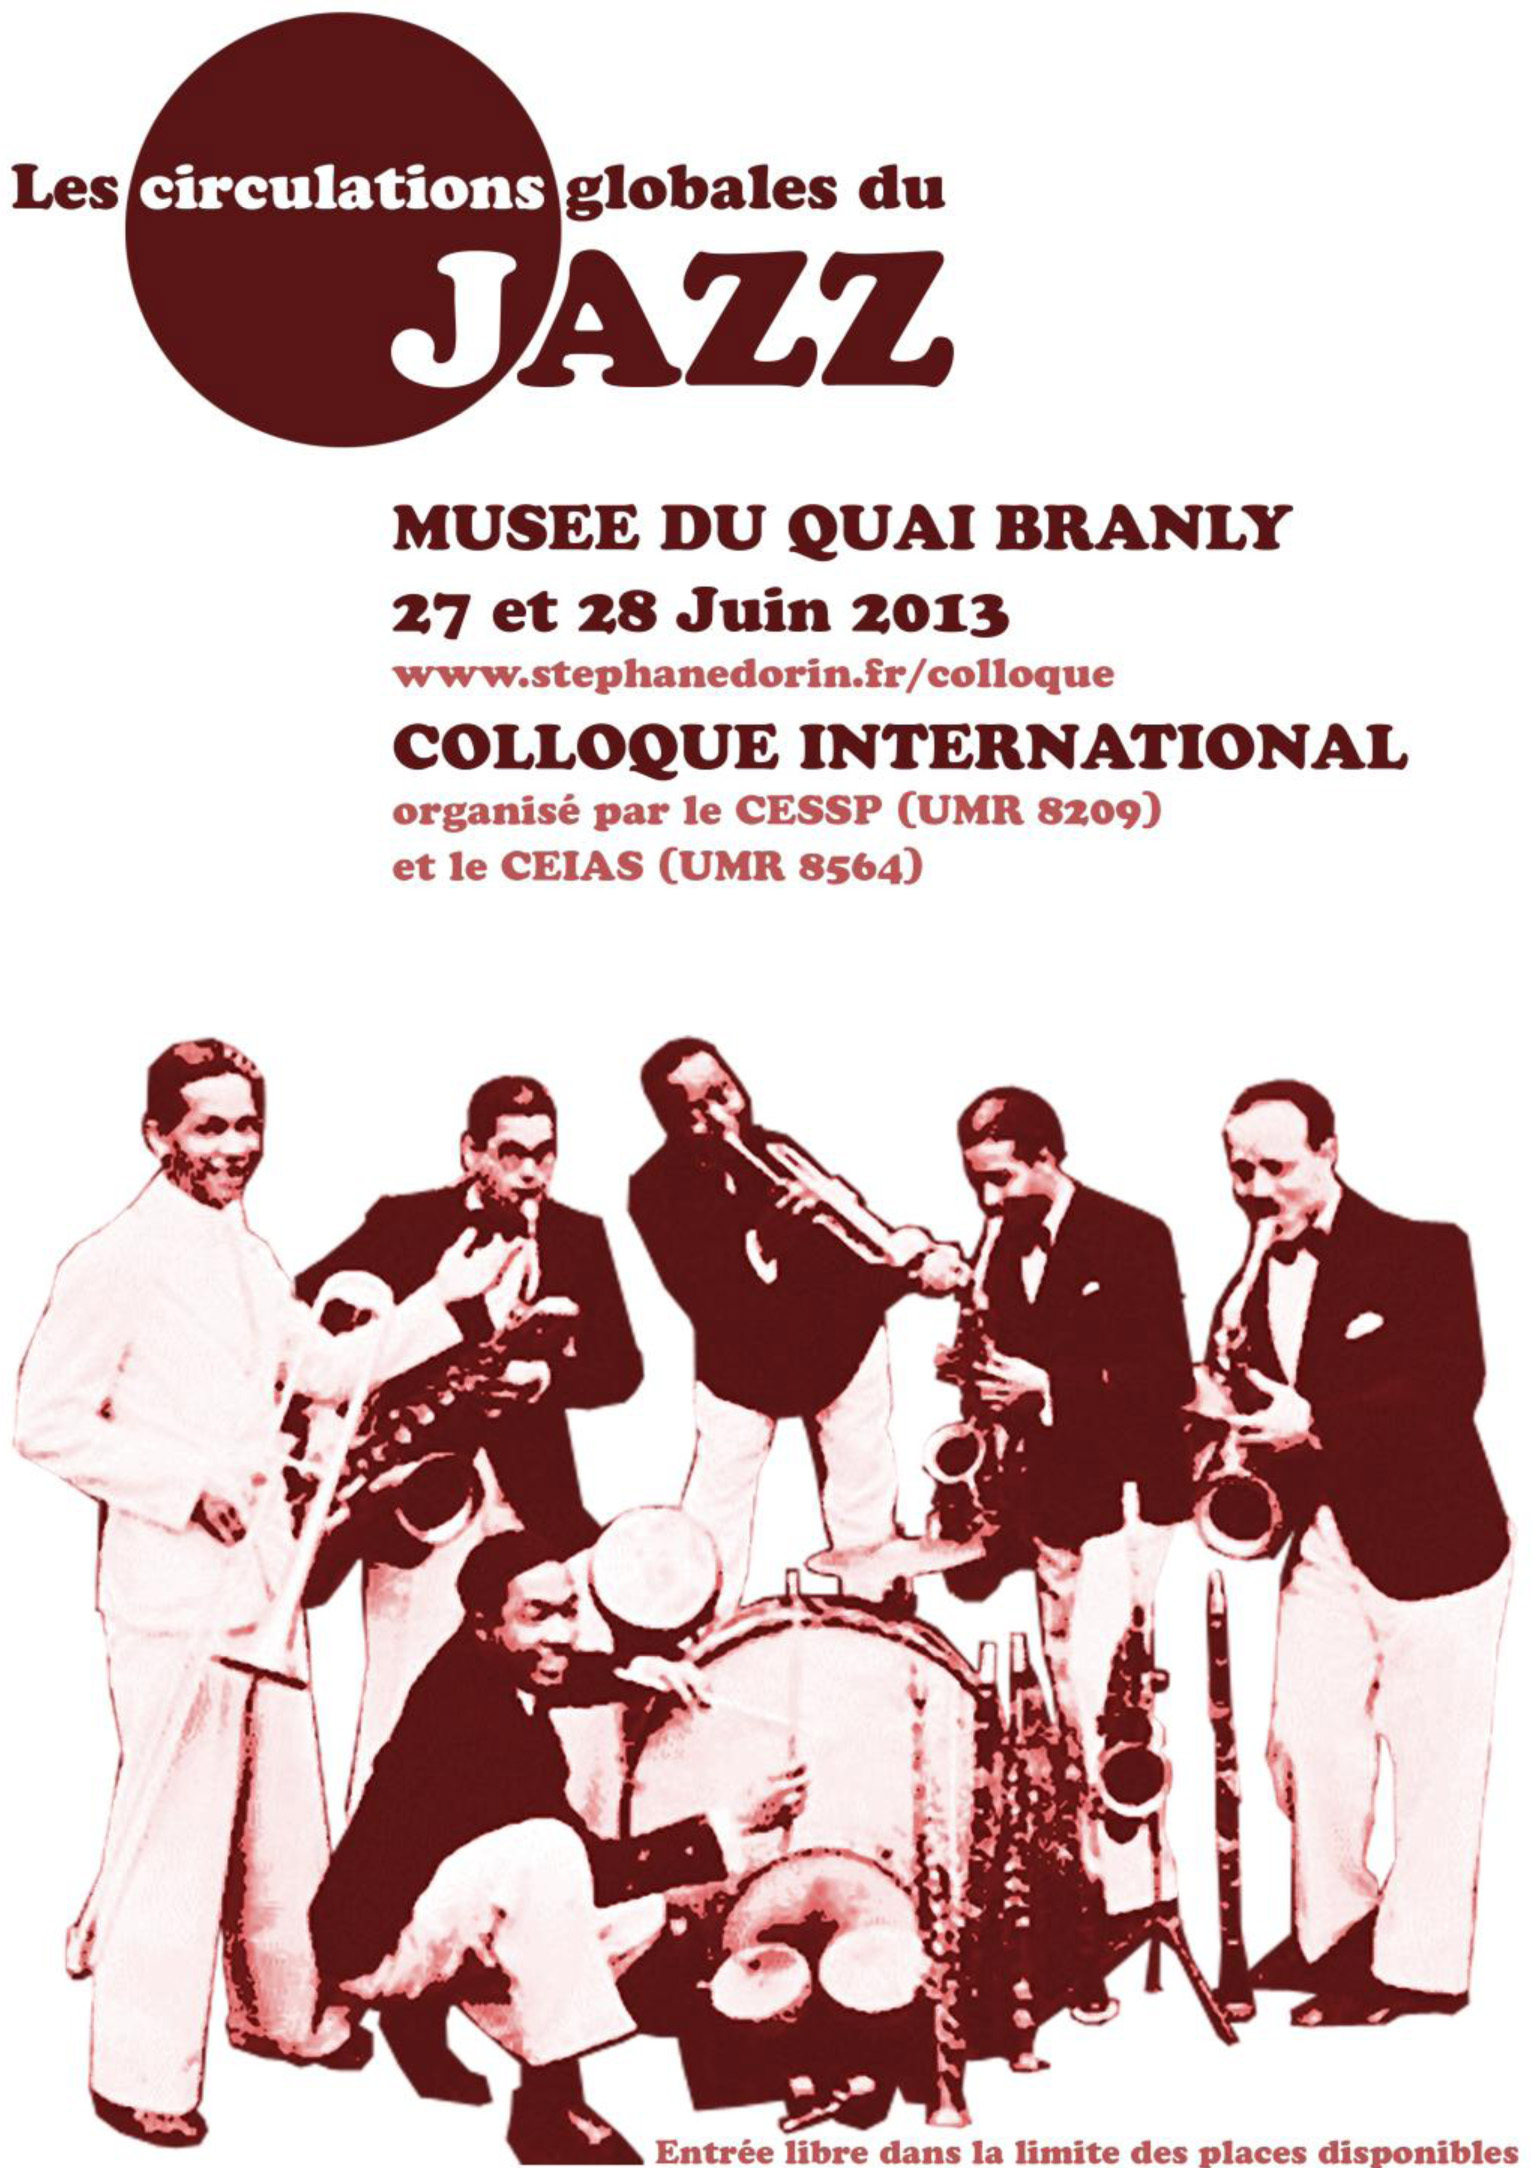 Les circulations globales du jazz